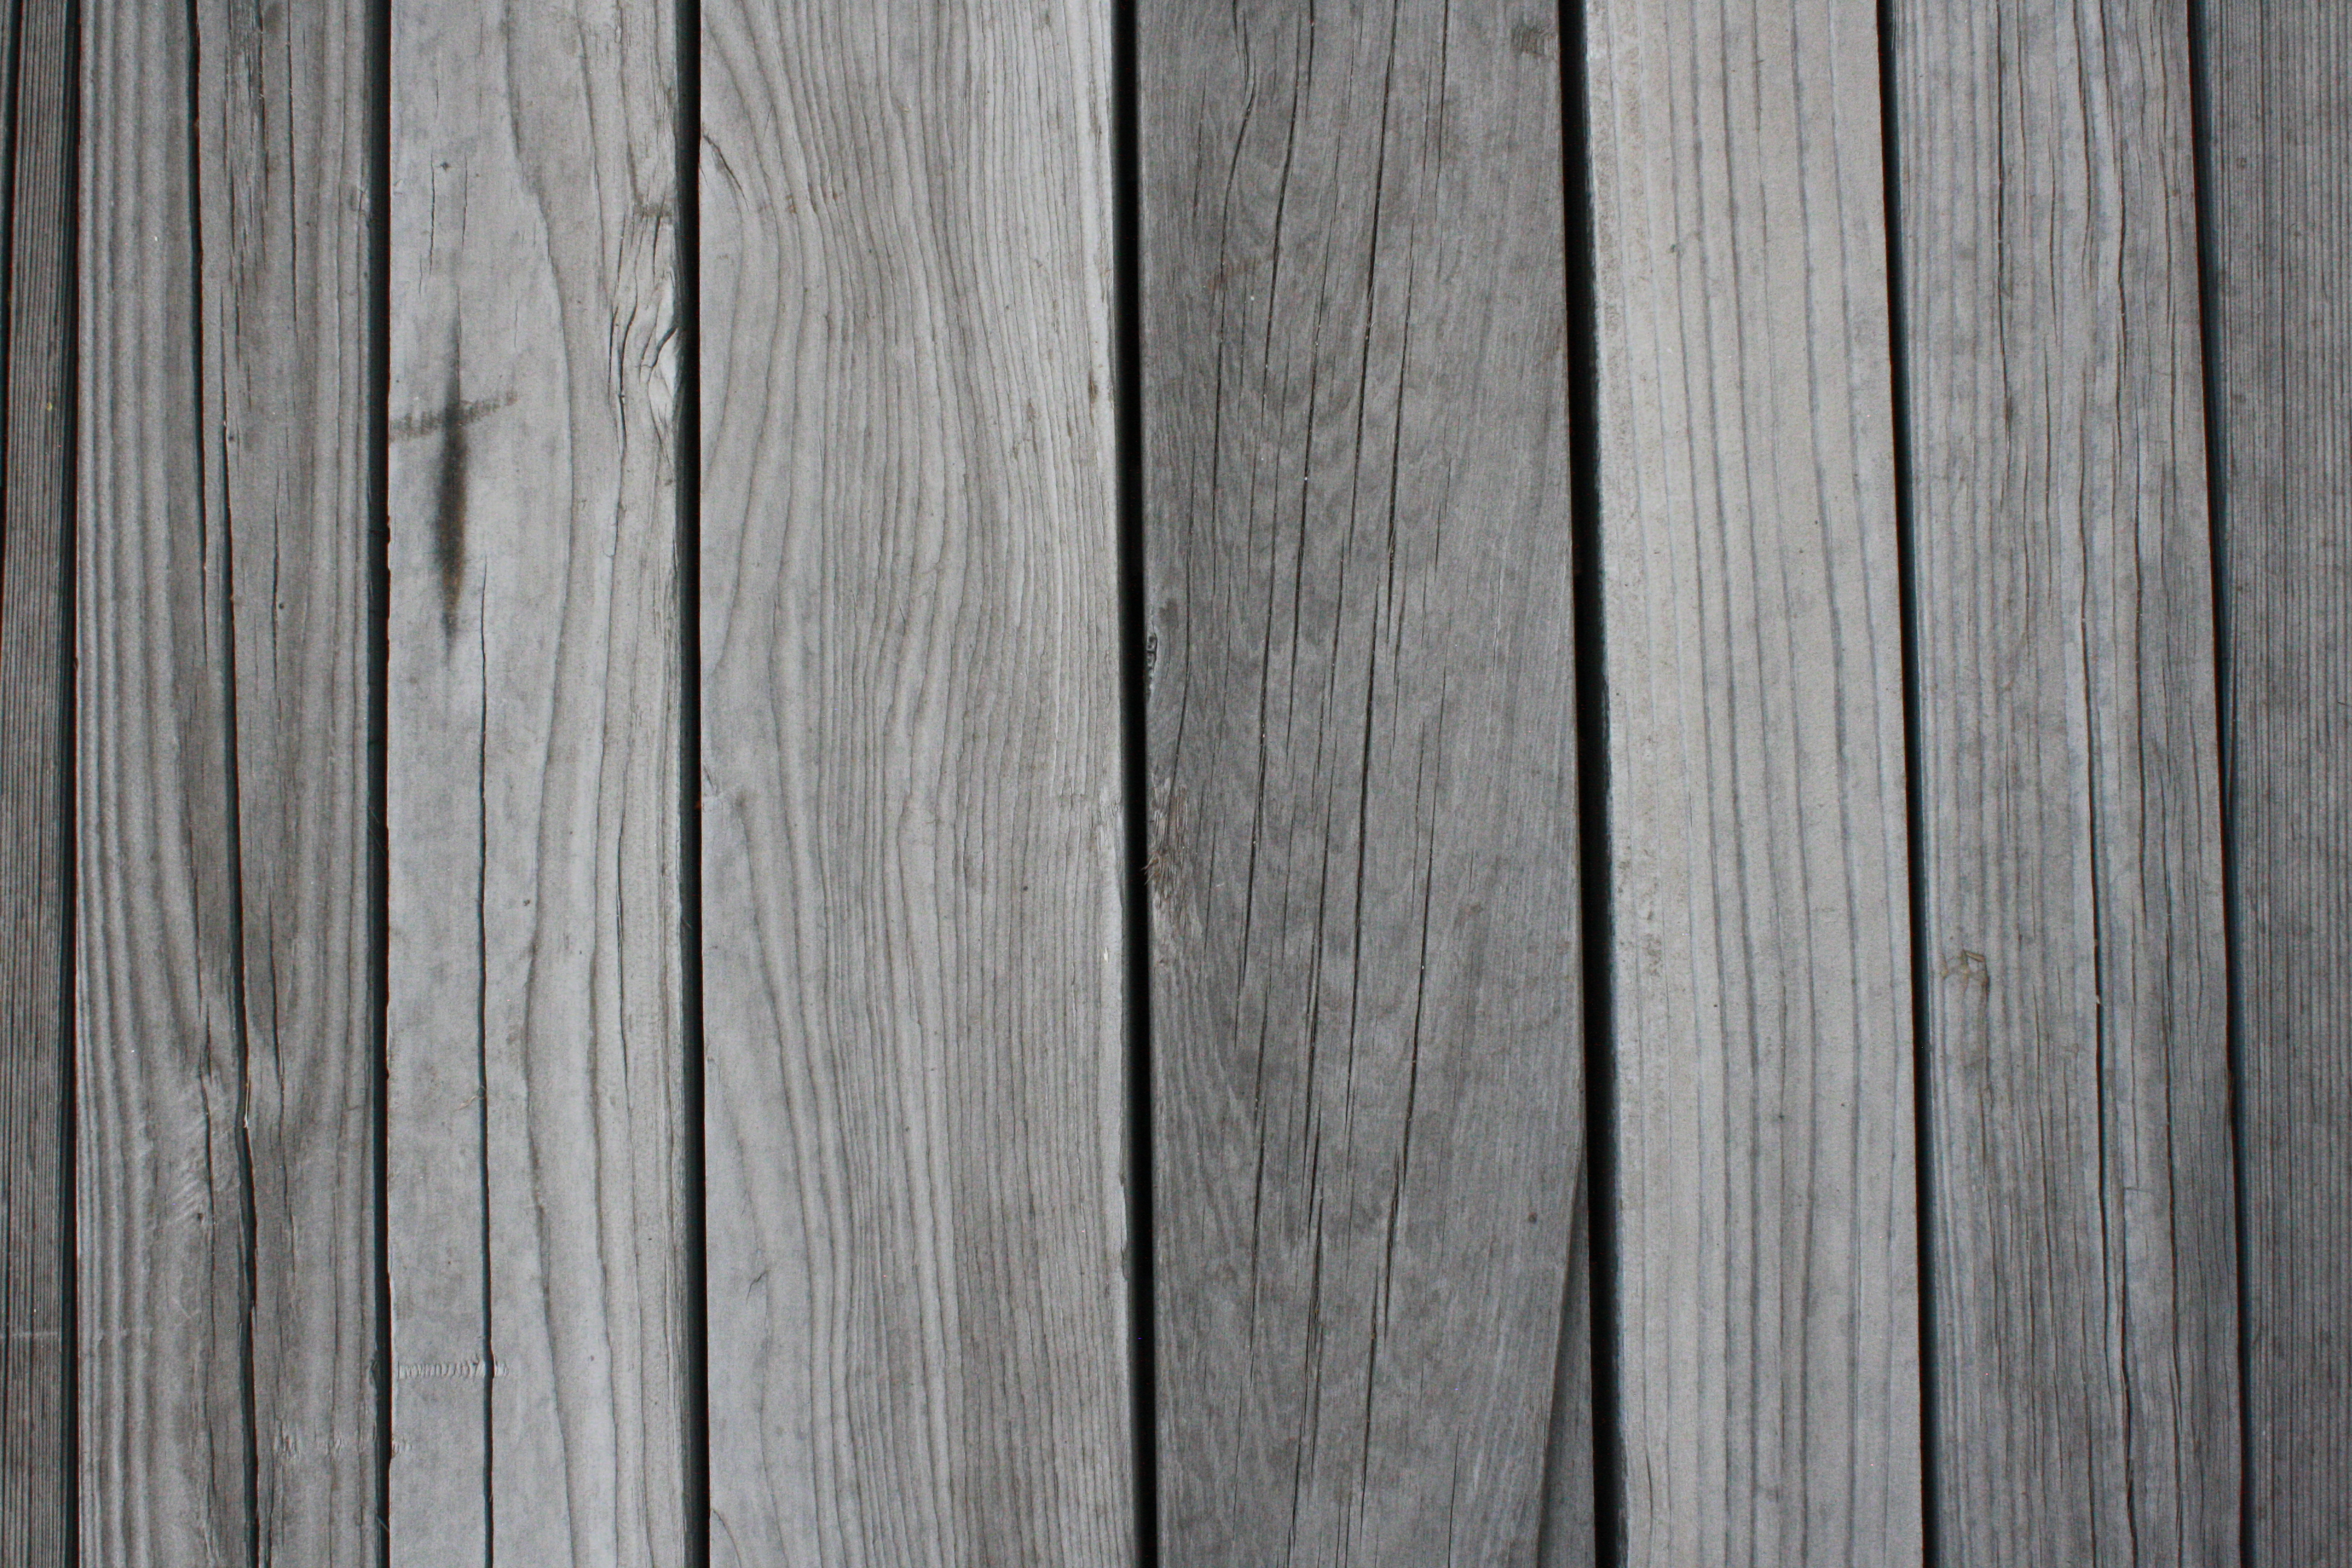 Weathered Gray Wood Planks Texture